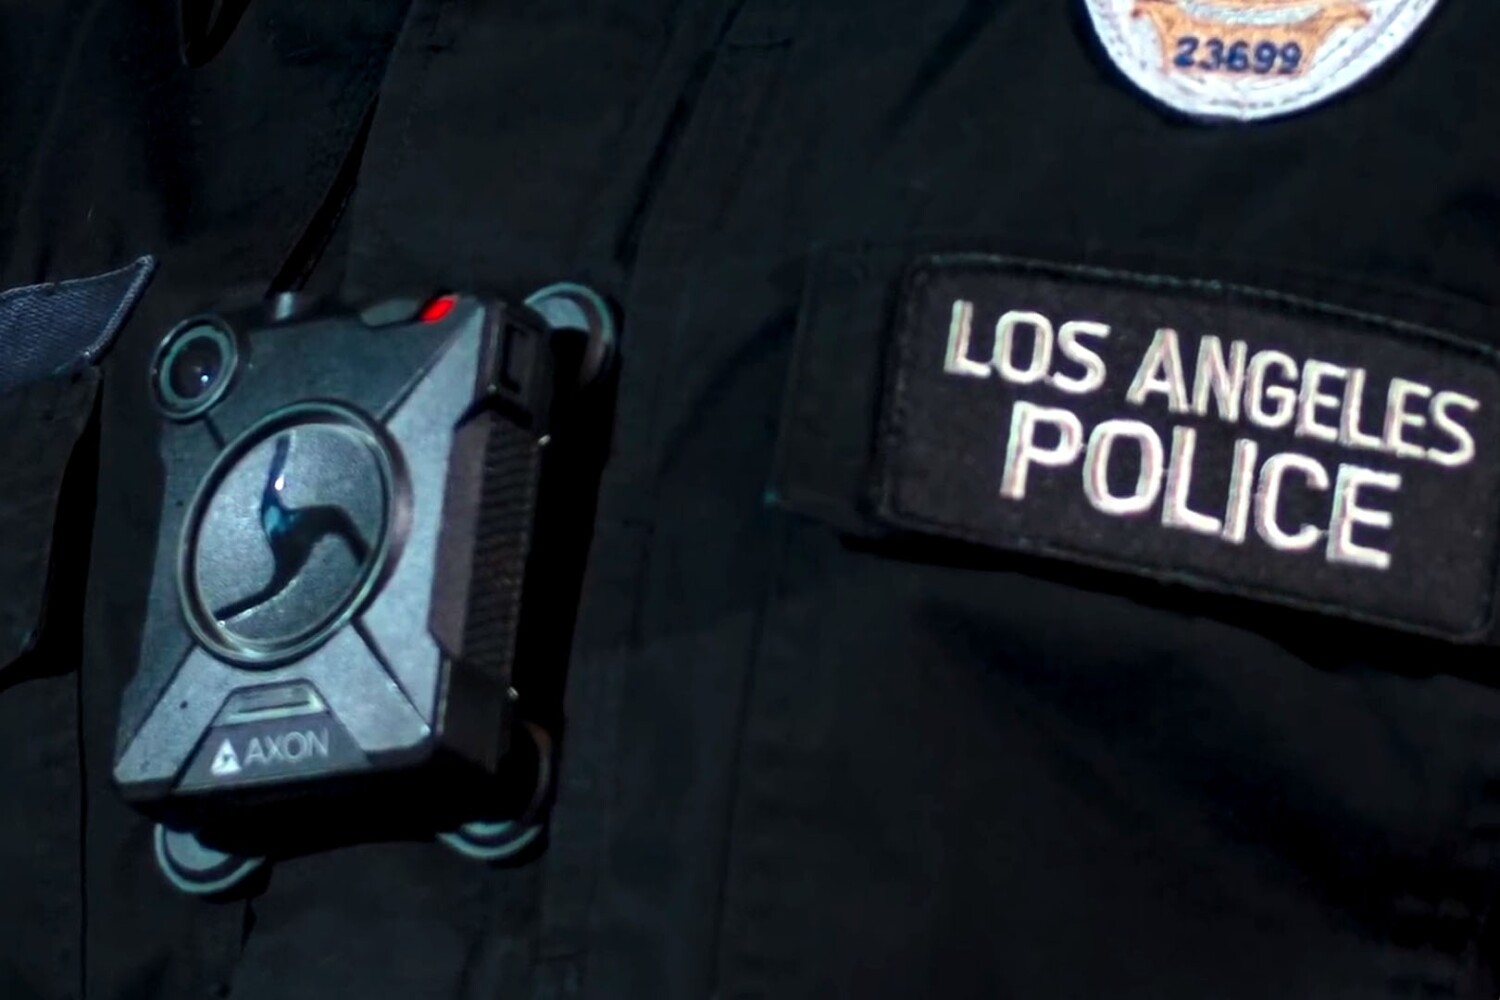 Justice Department to require federal agents to wear body cameras when serving warrants